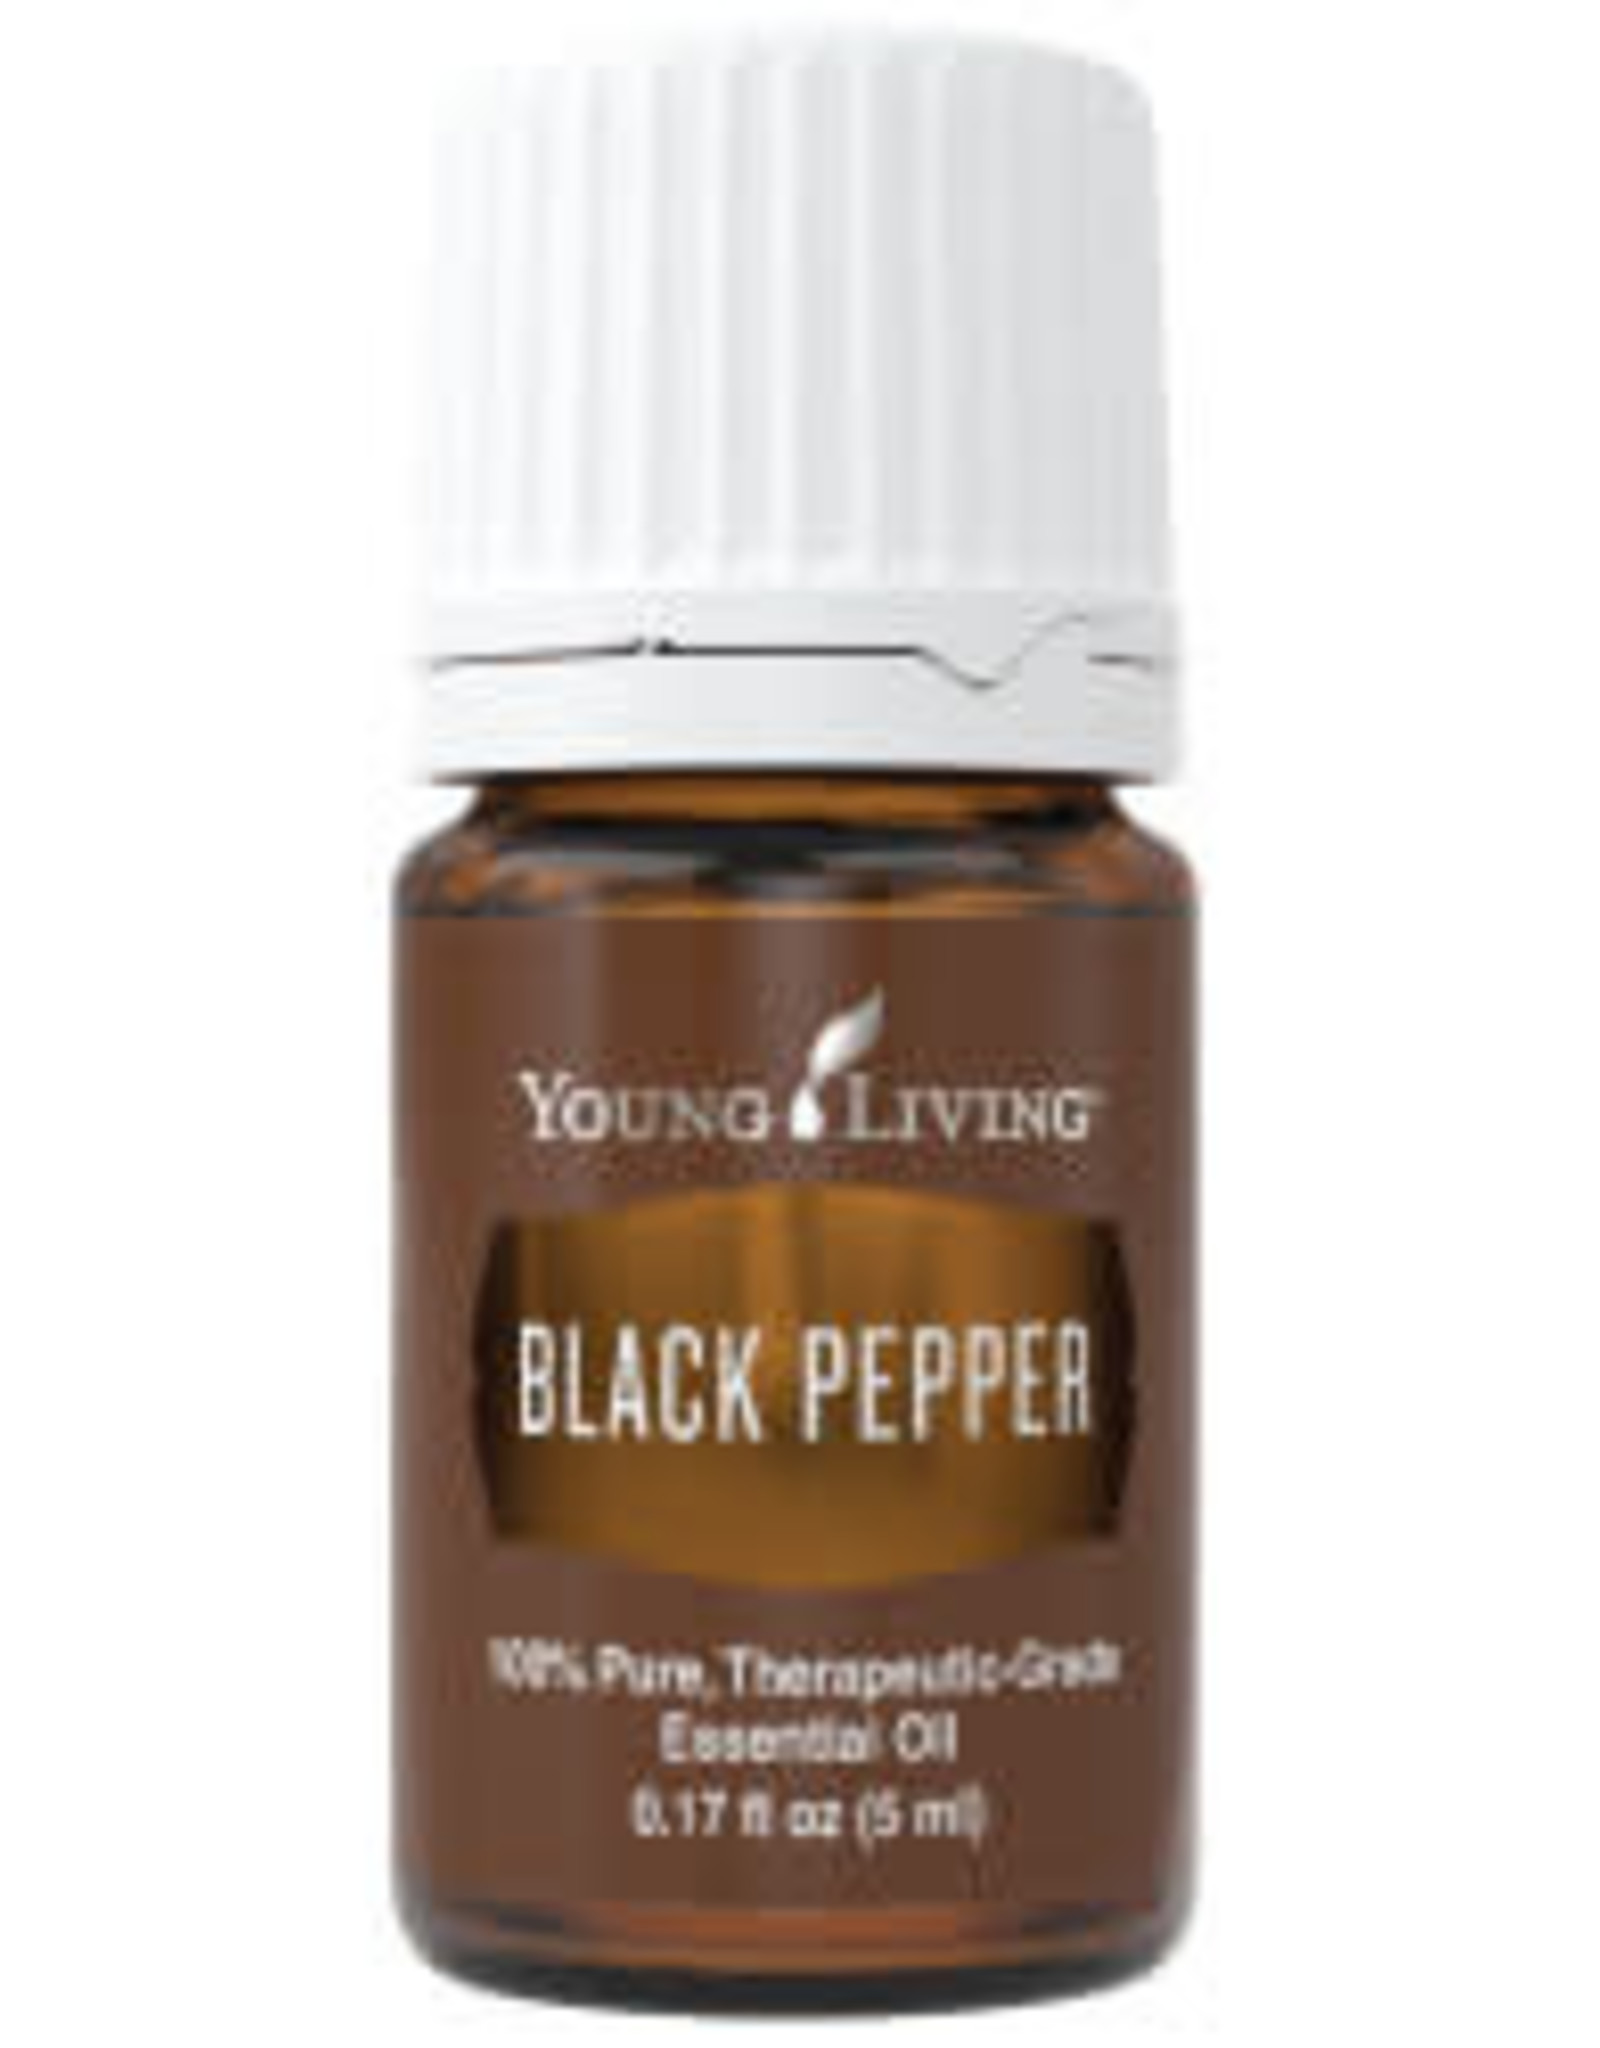 Young Living Black Pepper Oil